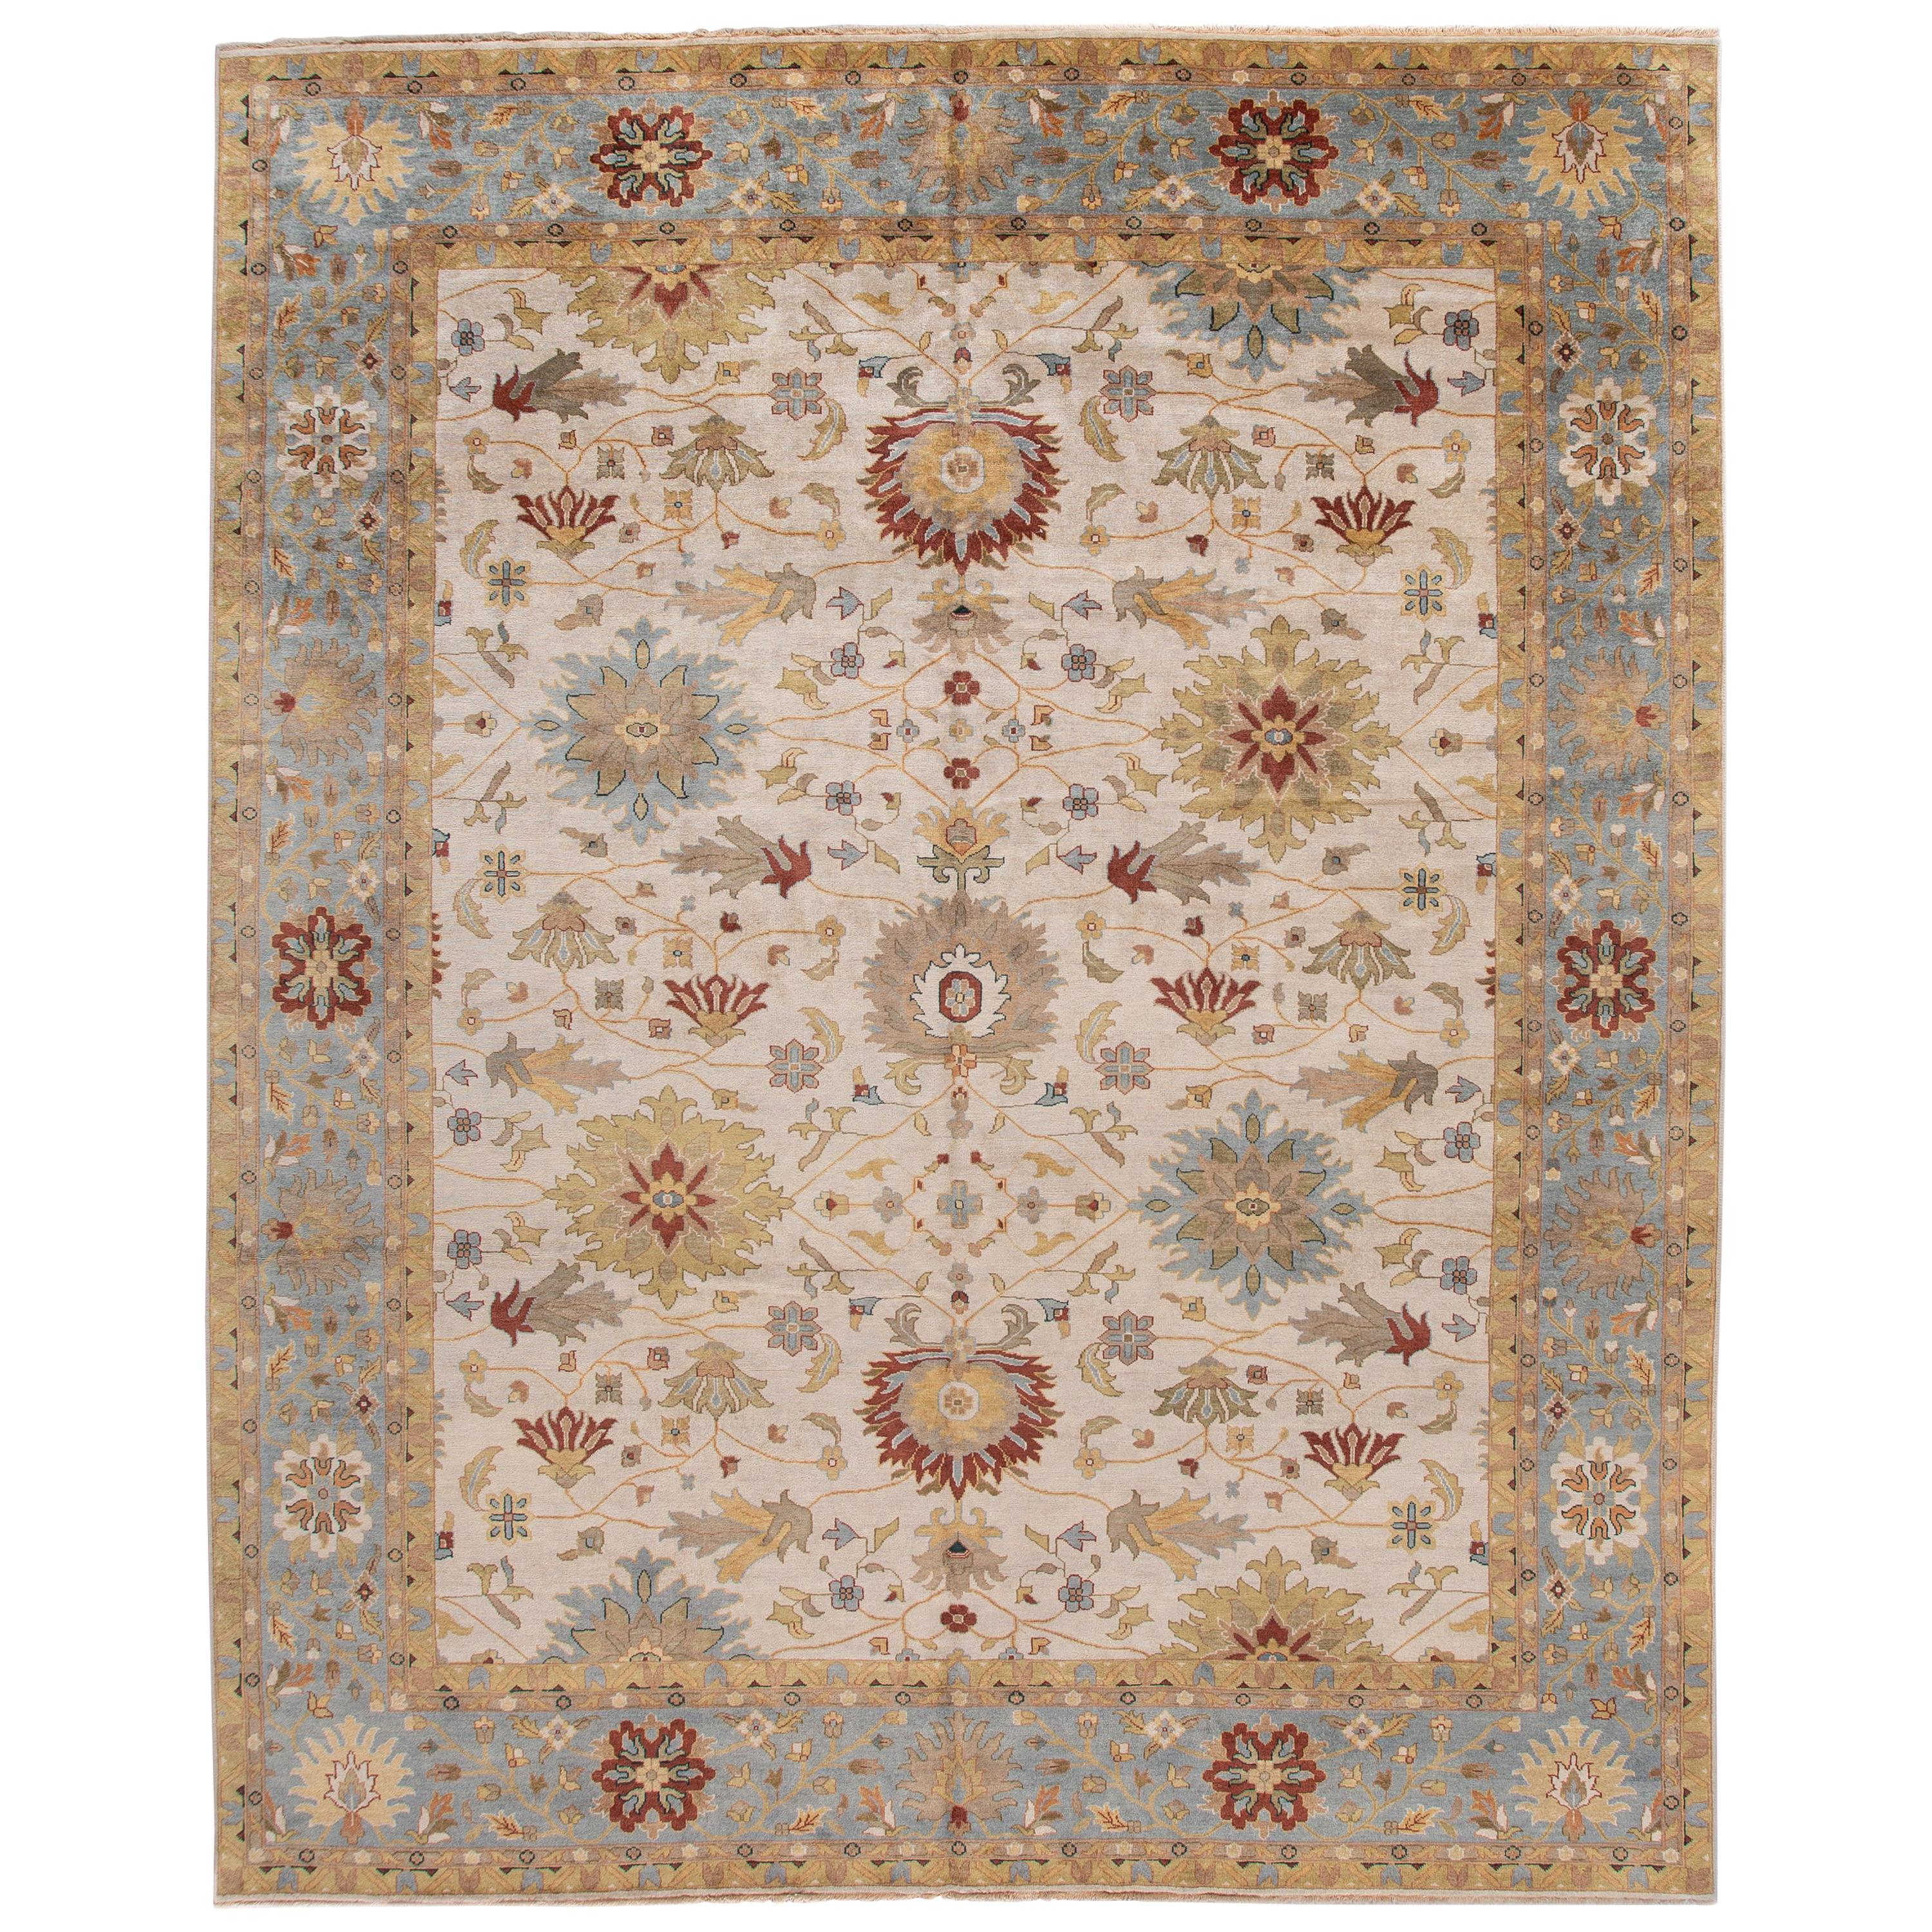 Modern Indian Mahal Style Handmade Floral Oversize Wool Rug